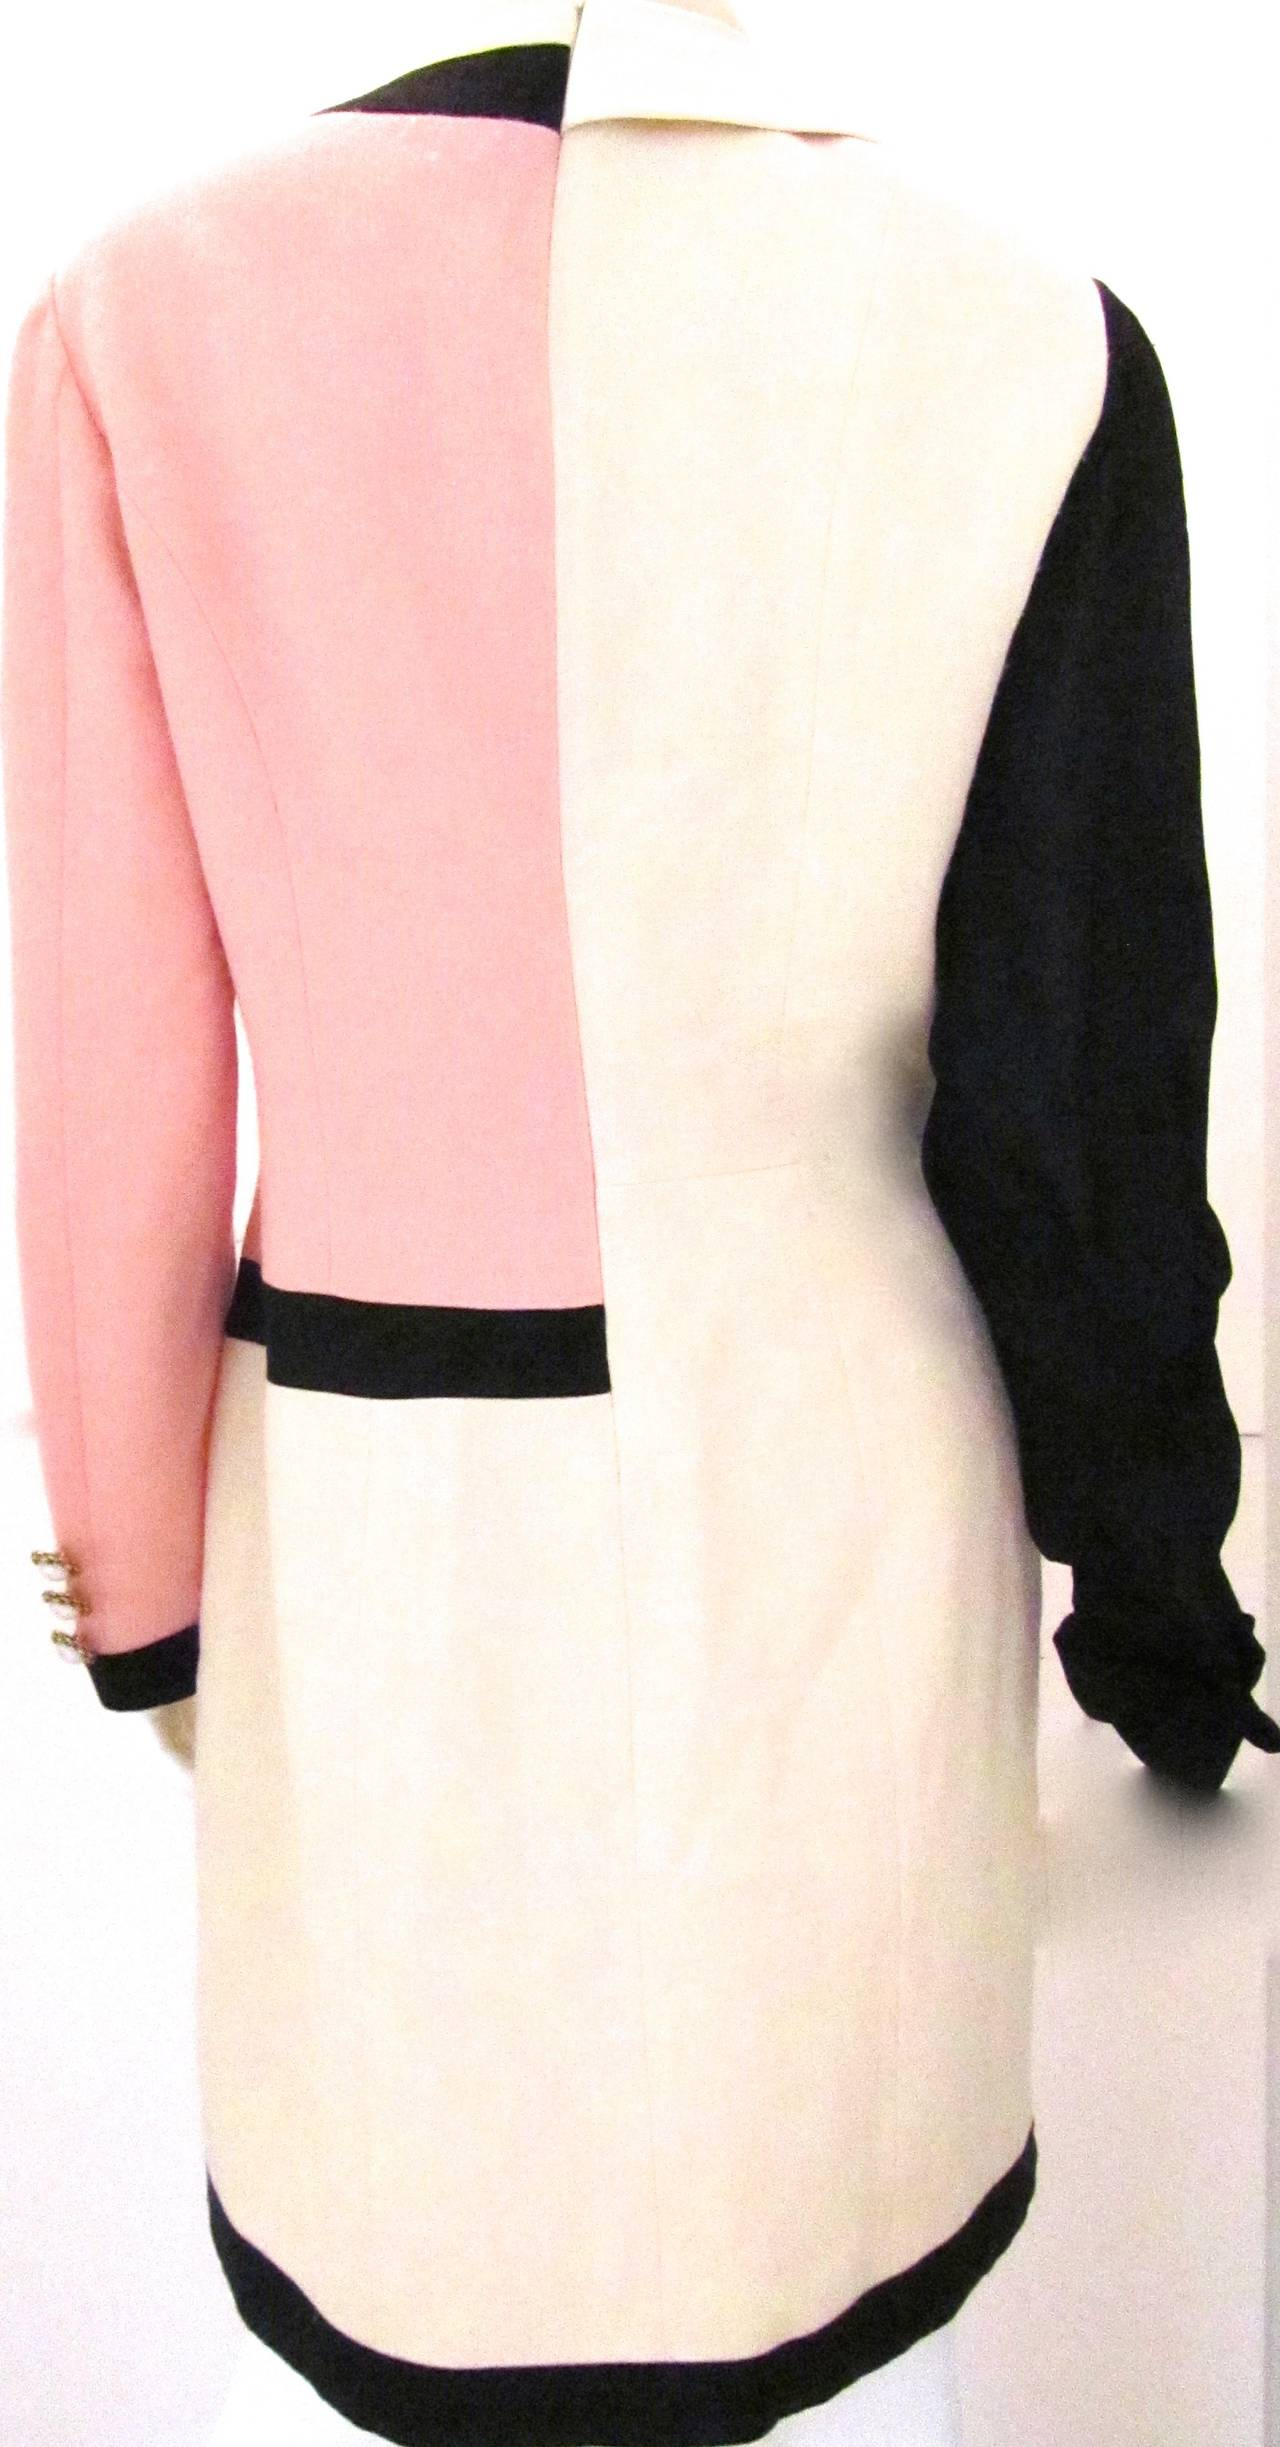 Moschino wool crepe runway dress from 1996. Half of the dress is a pink jacket in the style of Chanel. The other half of the dress is white with a  Peter Pan styled bow at the top. Black trim along is along center of the front, the neckline, the